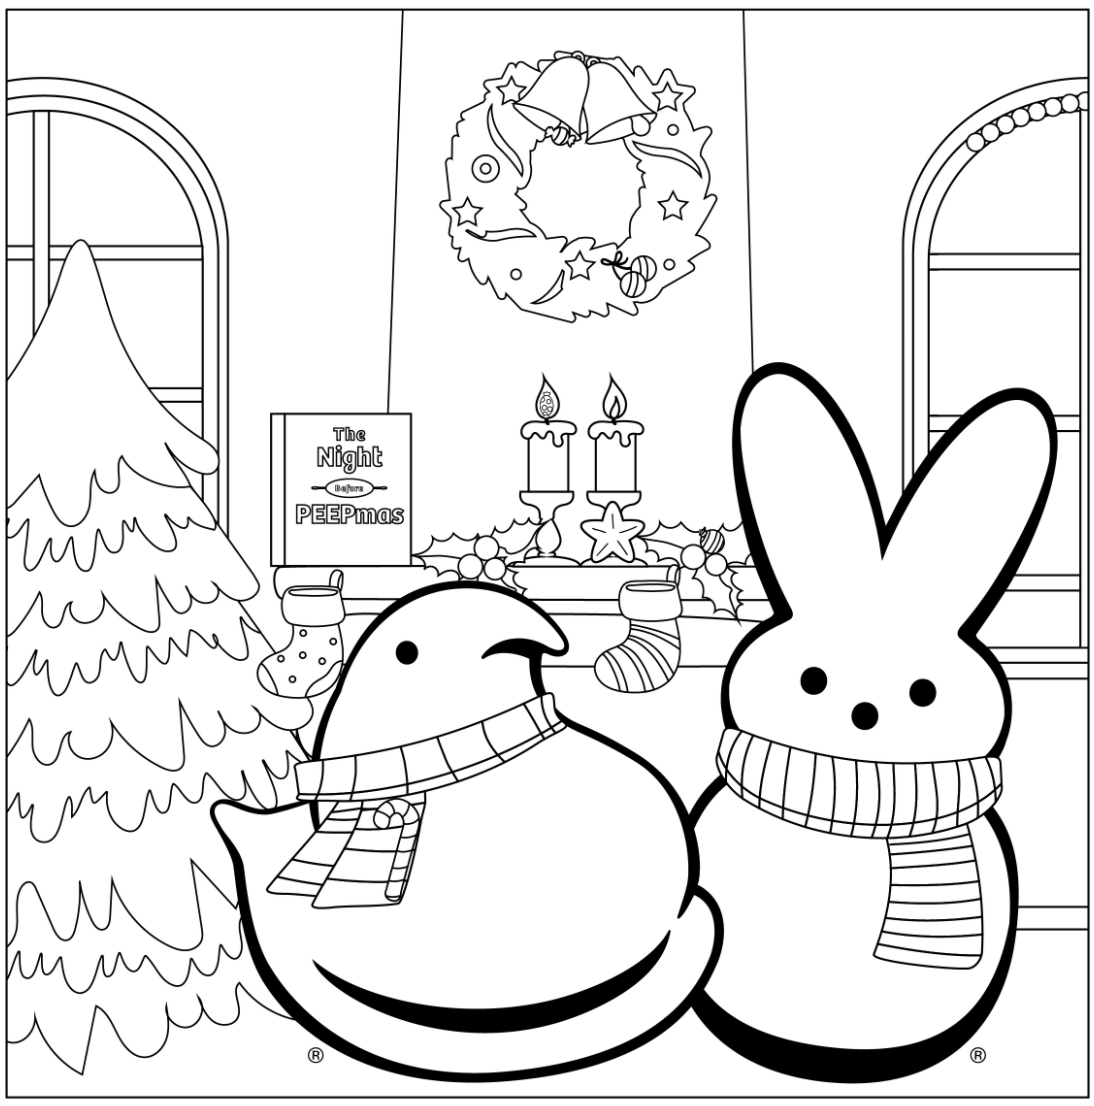 Peeps Coloring page activity download